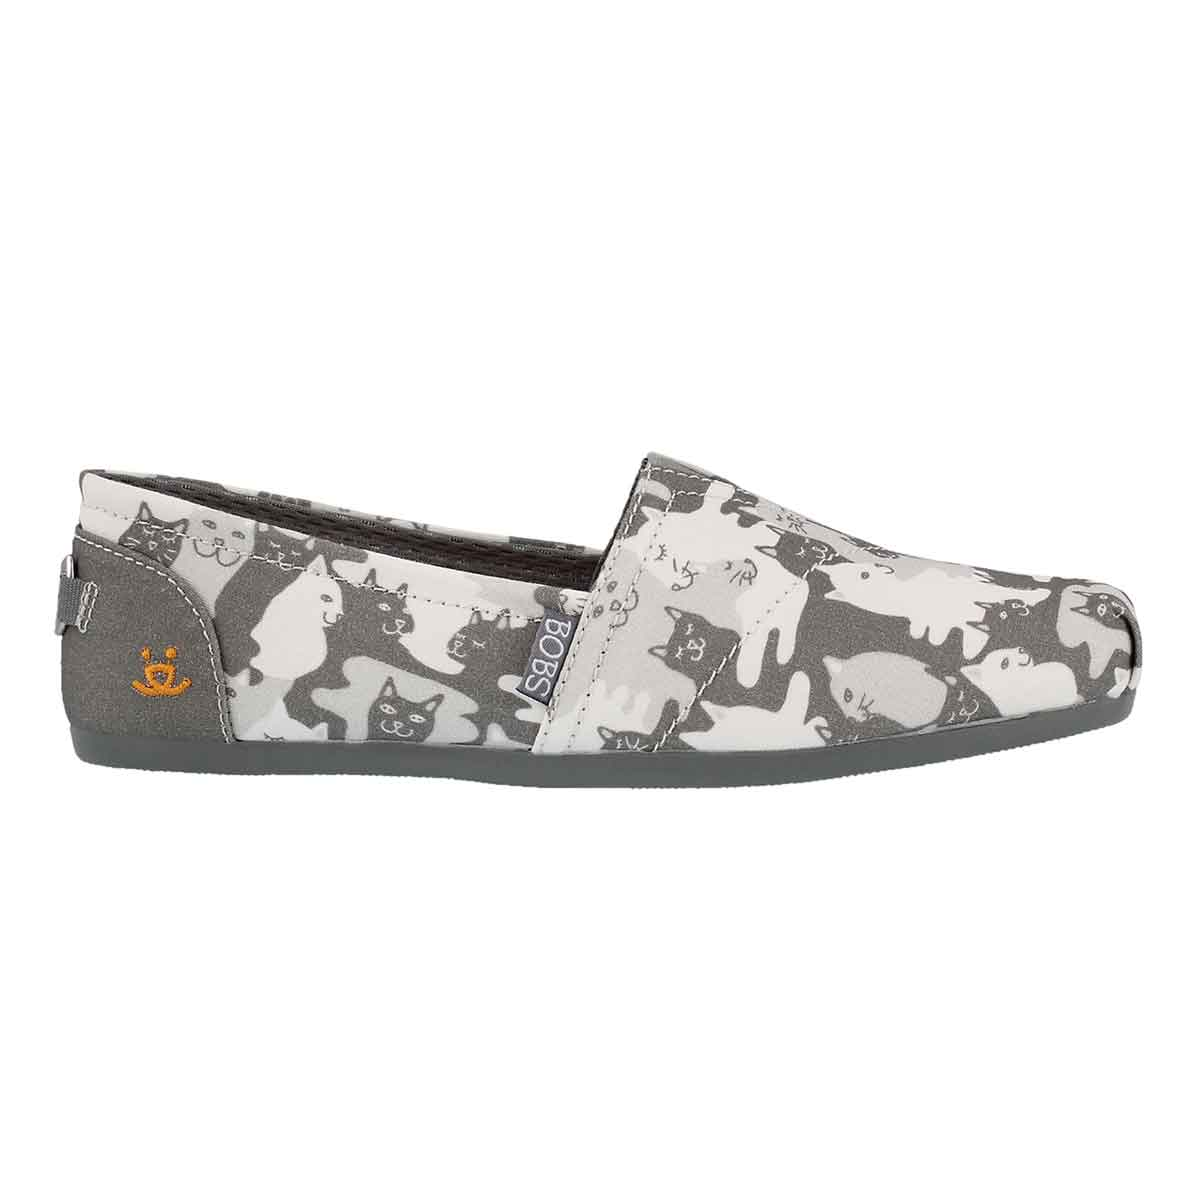 Lds Bobs Plush Cat-Mouflage gry slip on